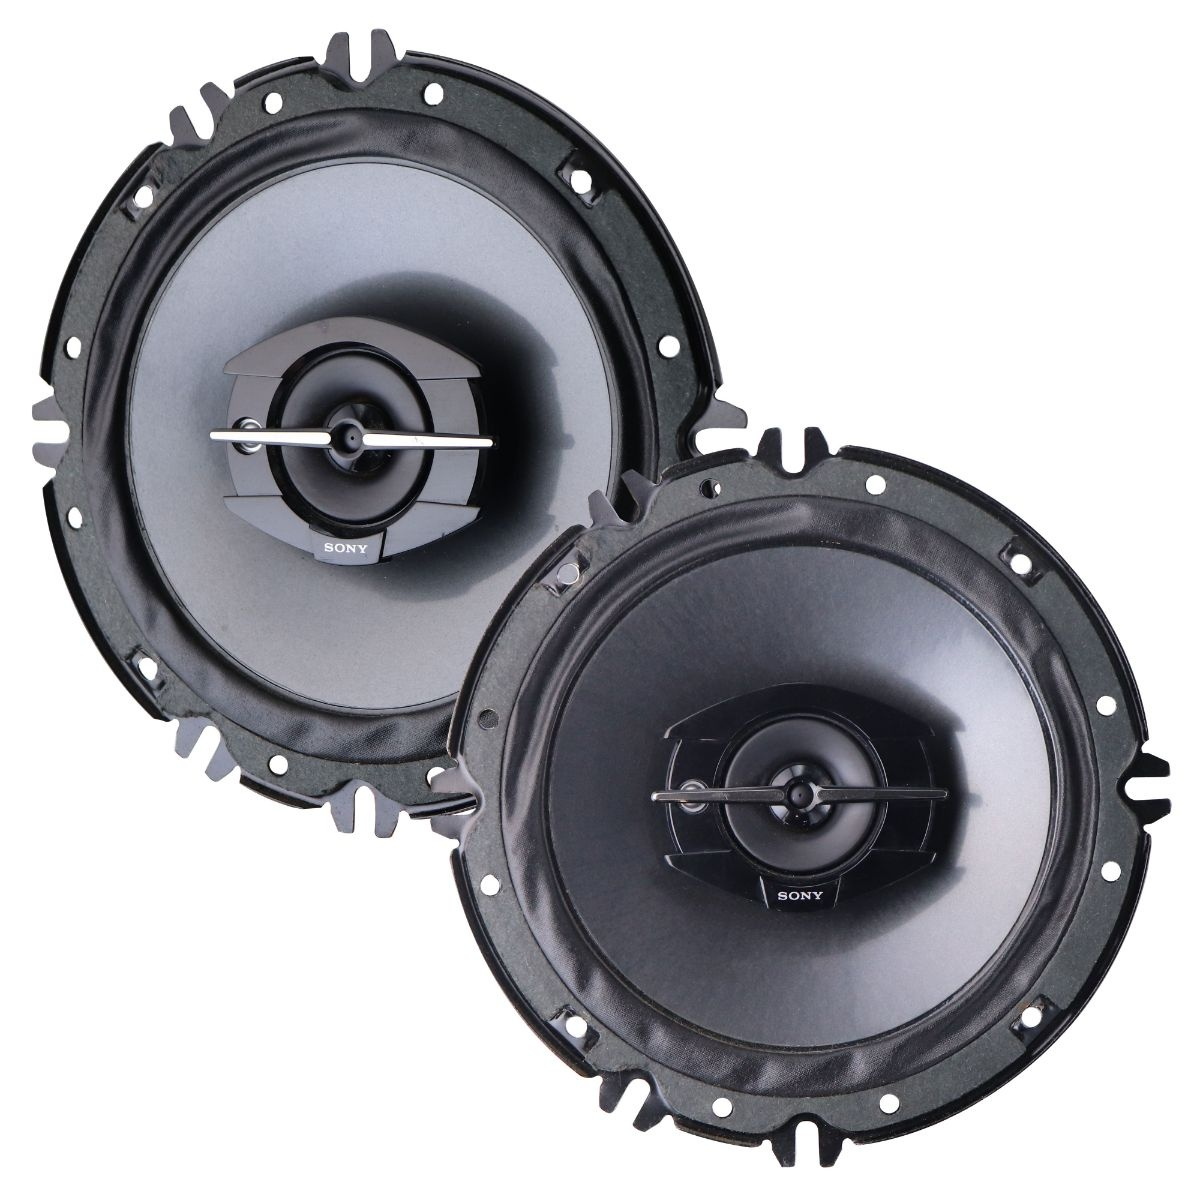 Sony (XS-GT1638F) 6-1/2 inch 3-way Car Speakers - 2 Speakers